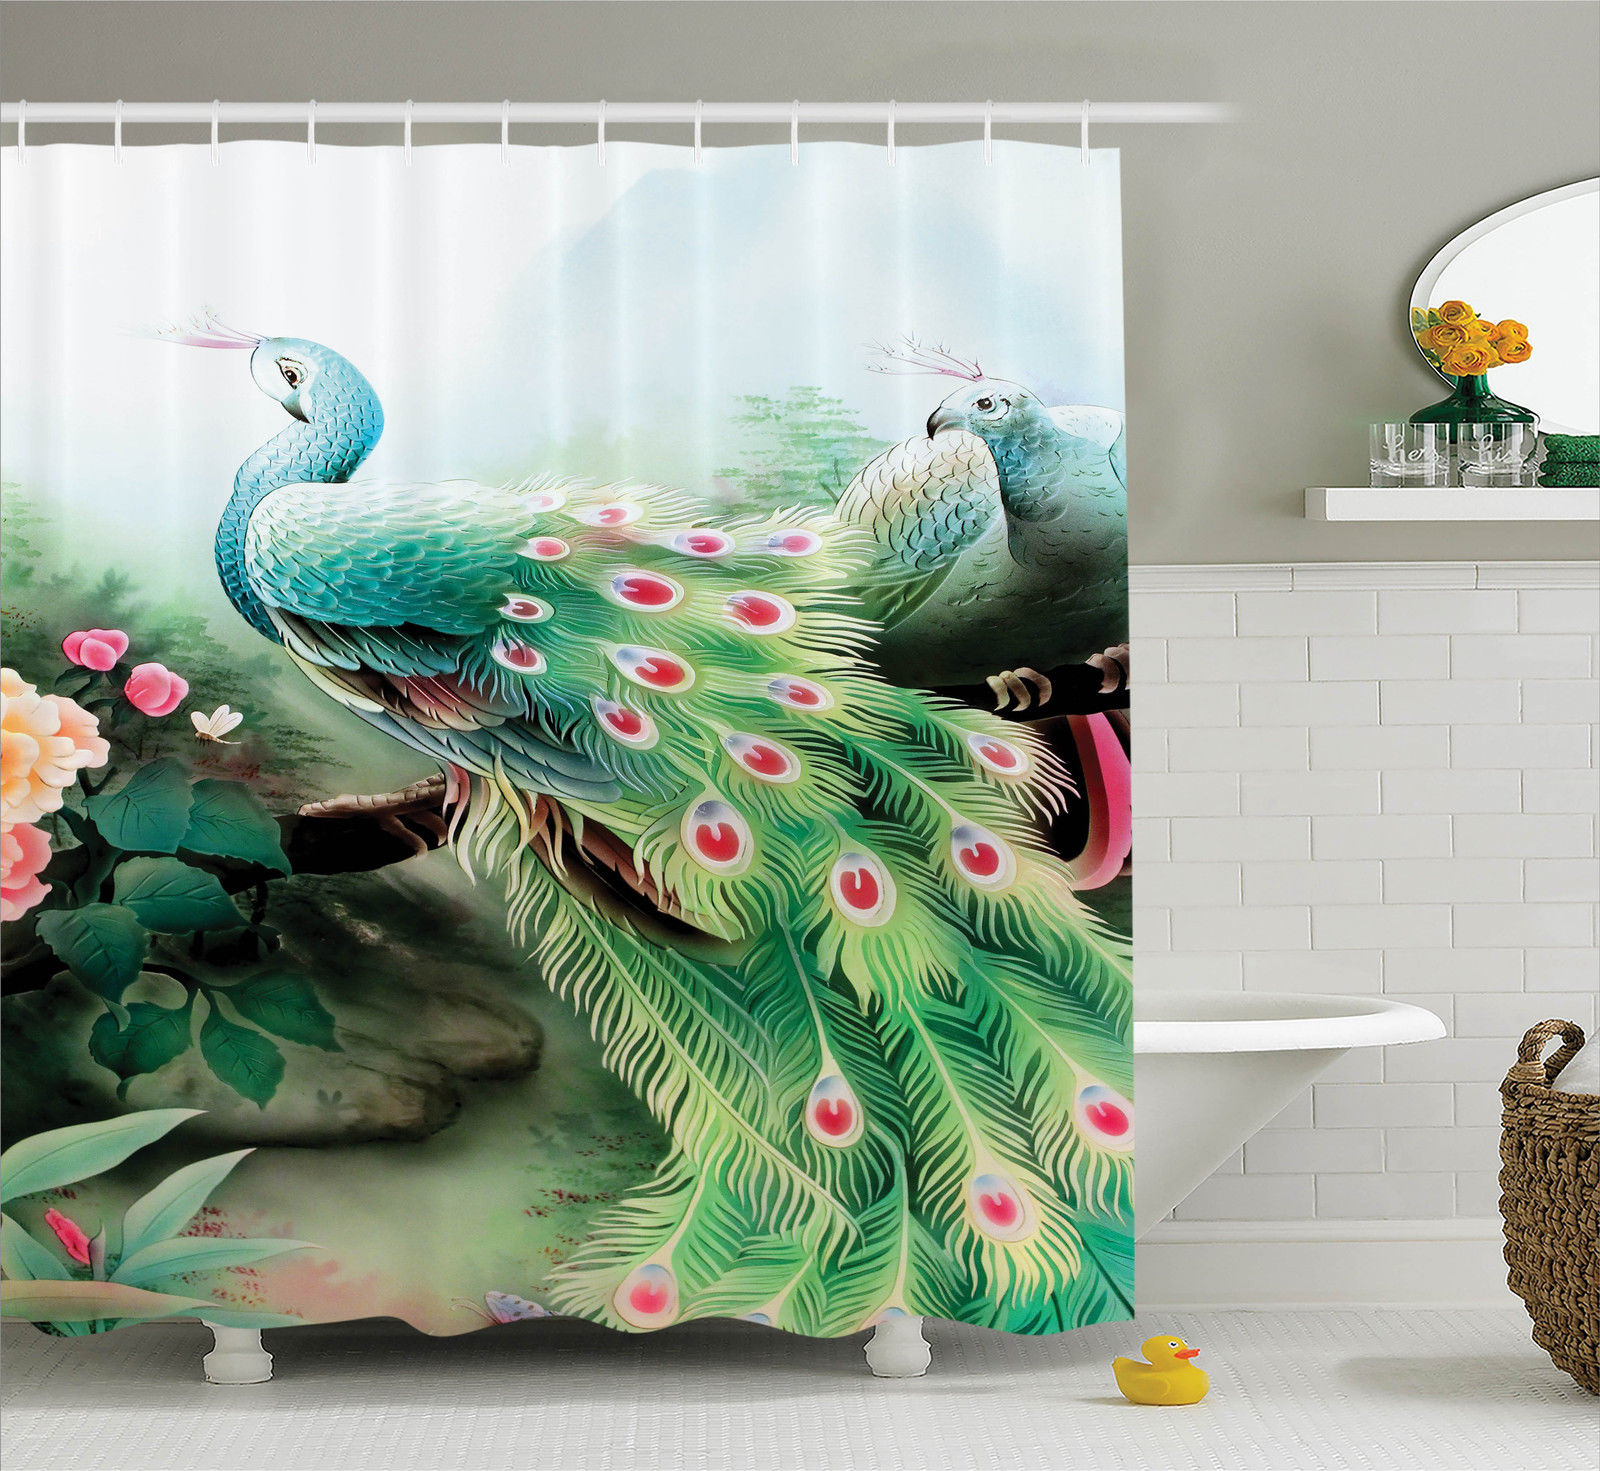 Peacock Decor Shower Curtain Set, Peacock In Summer Flower Garden Glass  Vibrant Color Painting Effect